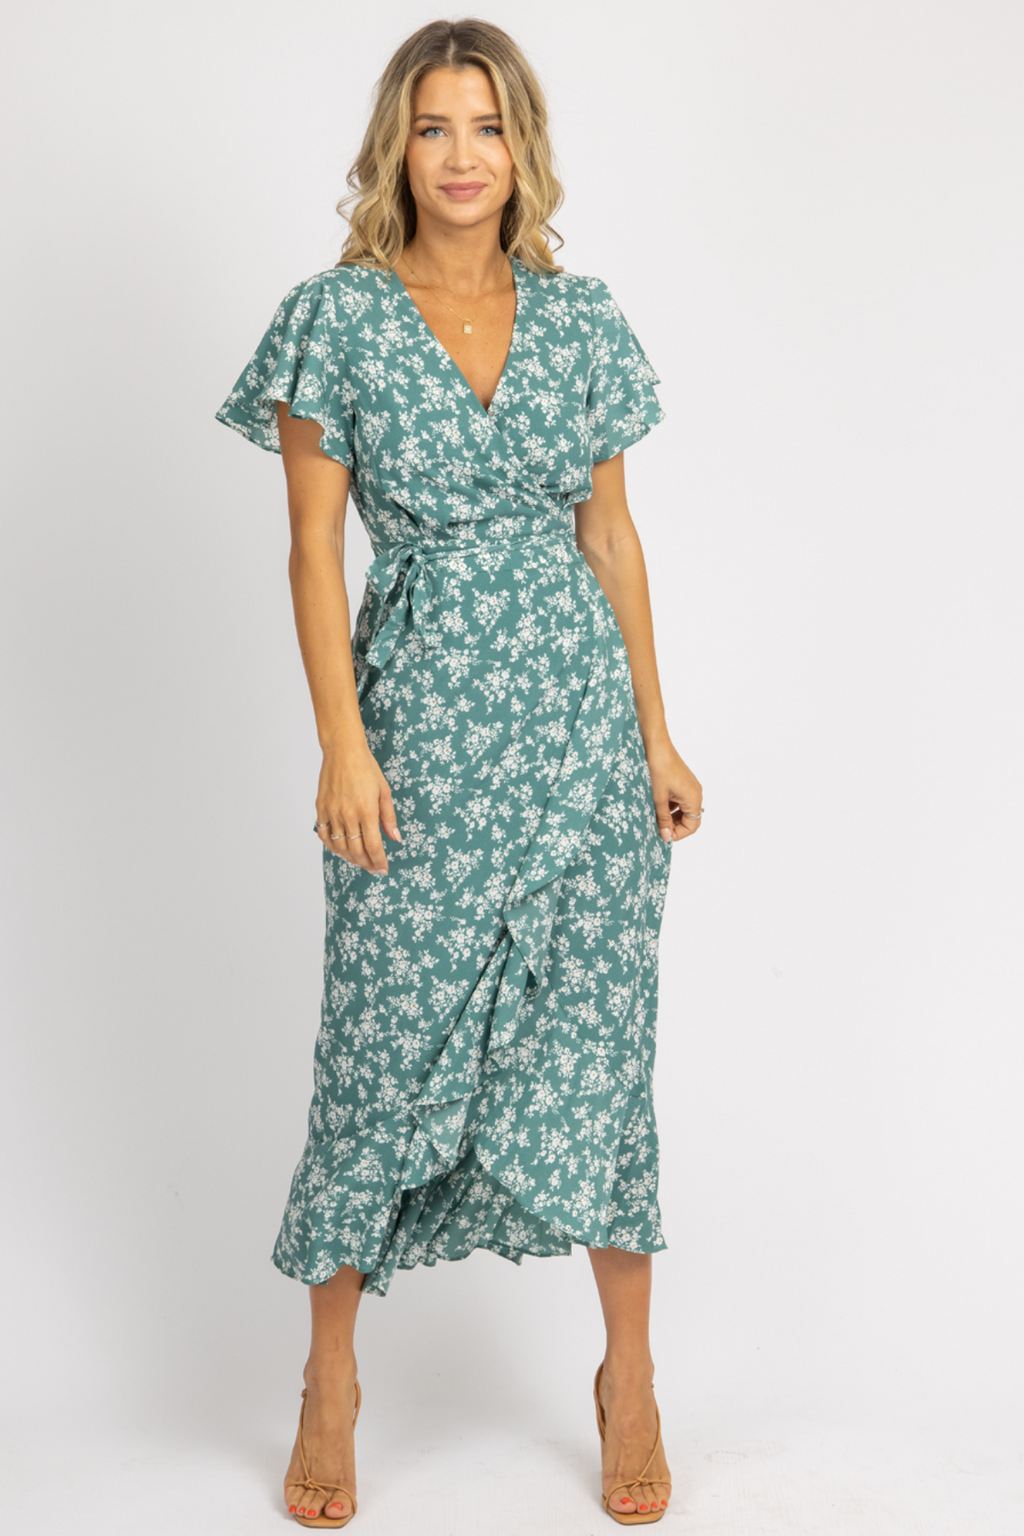 SEA GREEN FLORAL WRAP MAXI DRESS *RESTOCK COMING SOON*